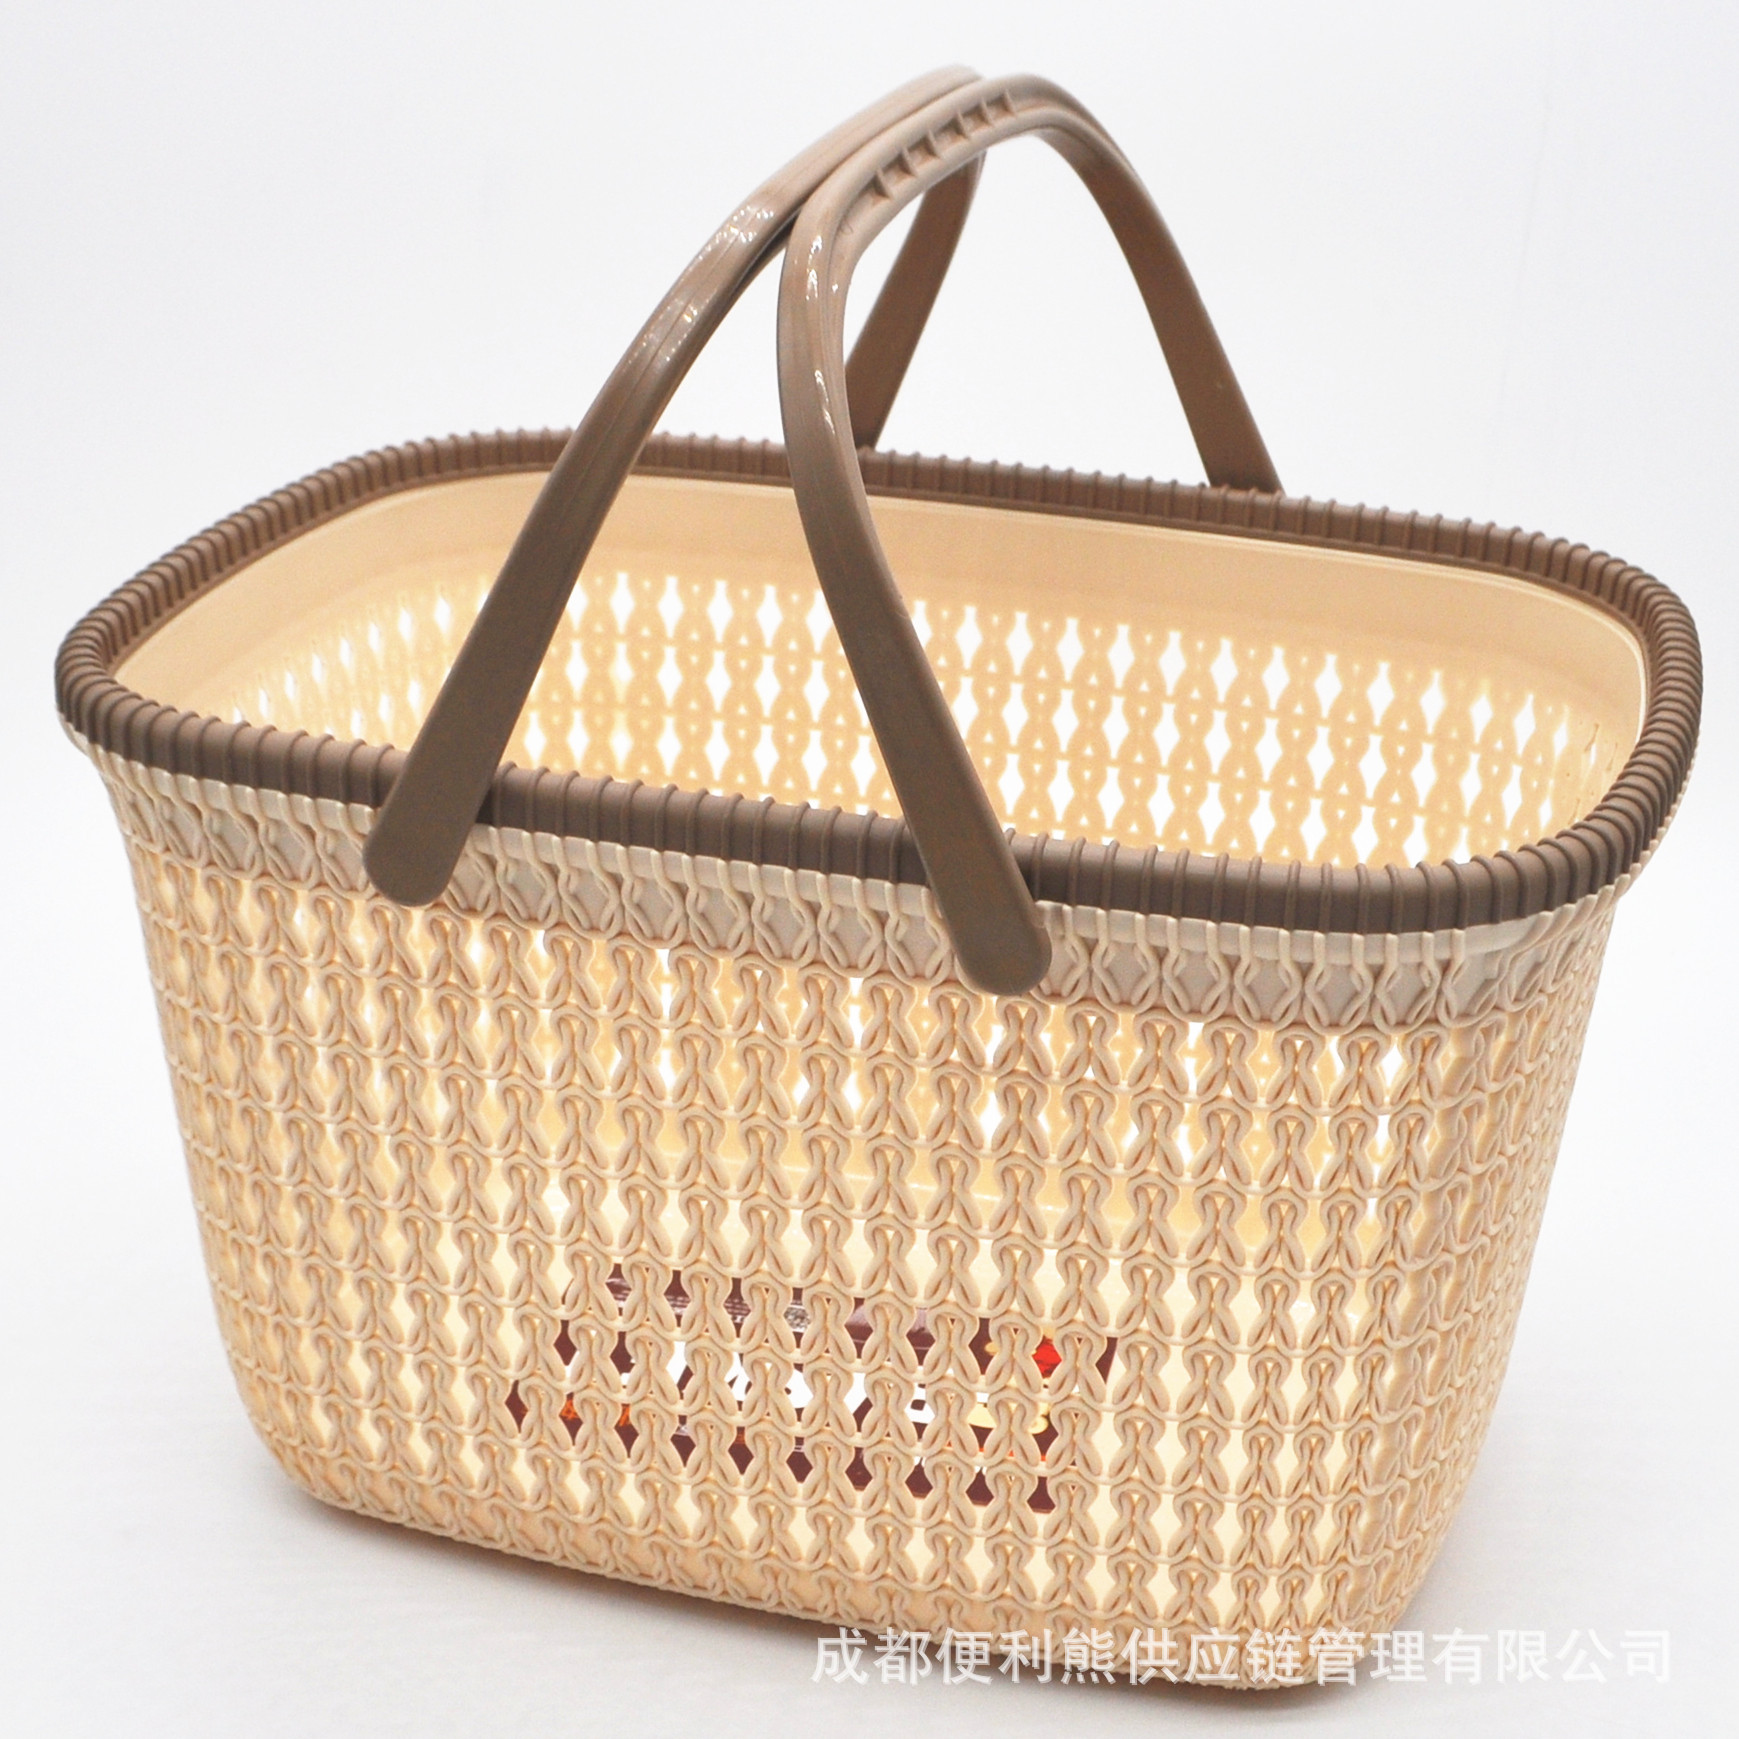 Lovely Faux Rattan Storage Basket for Laundry